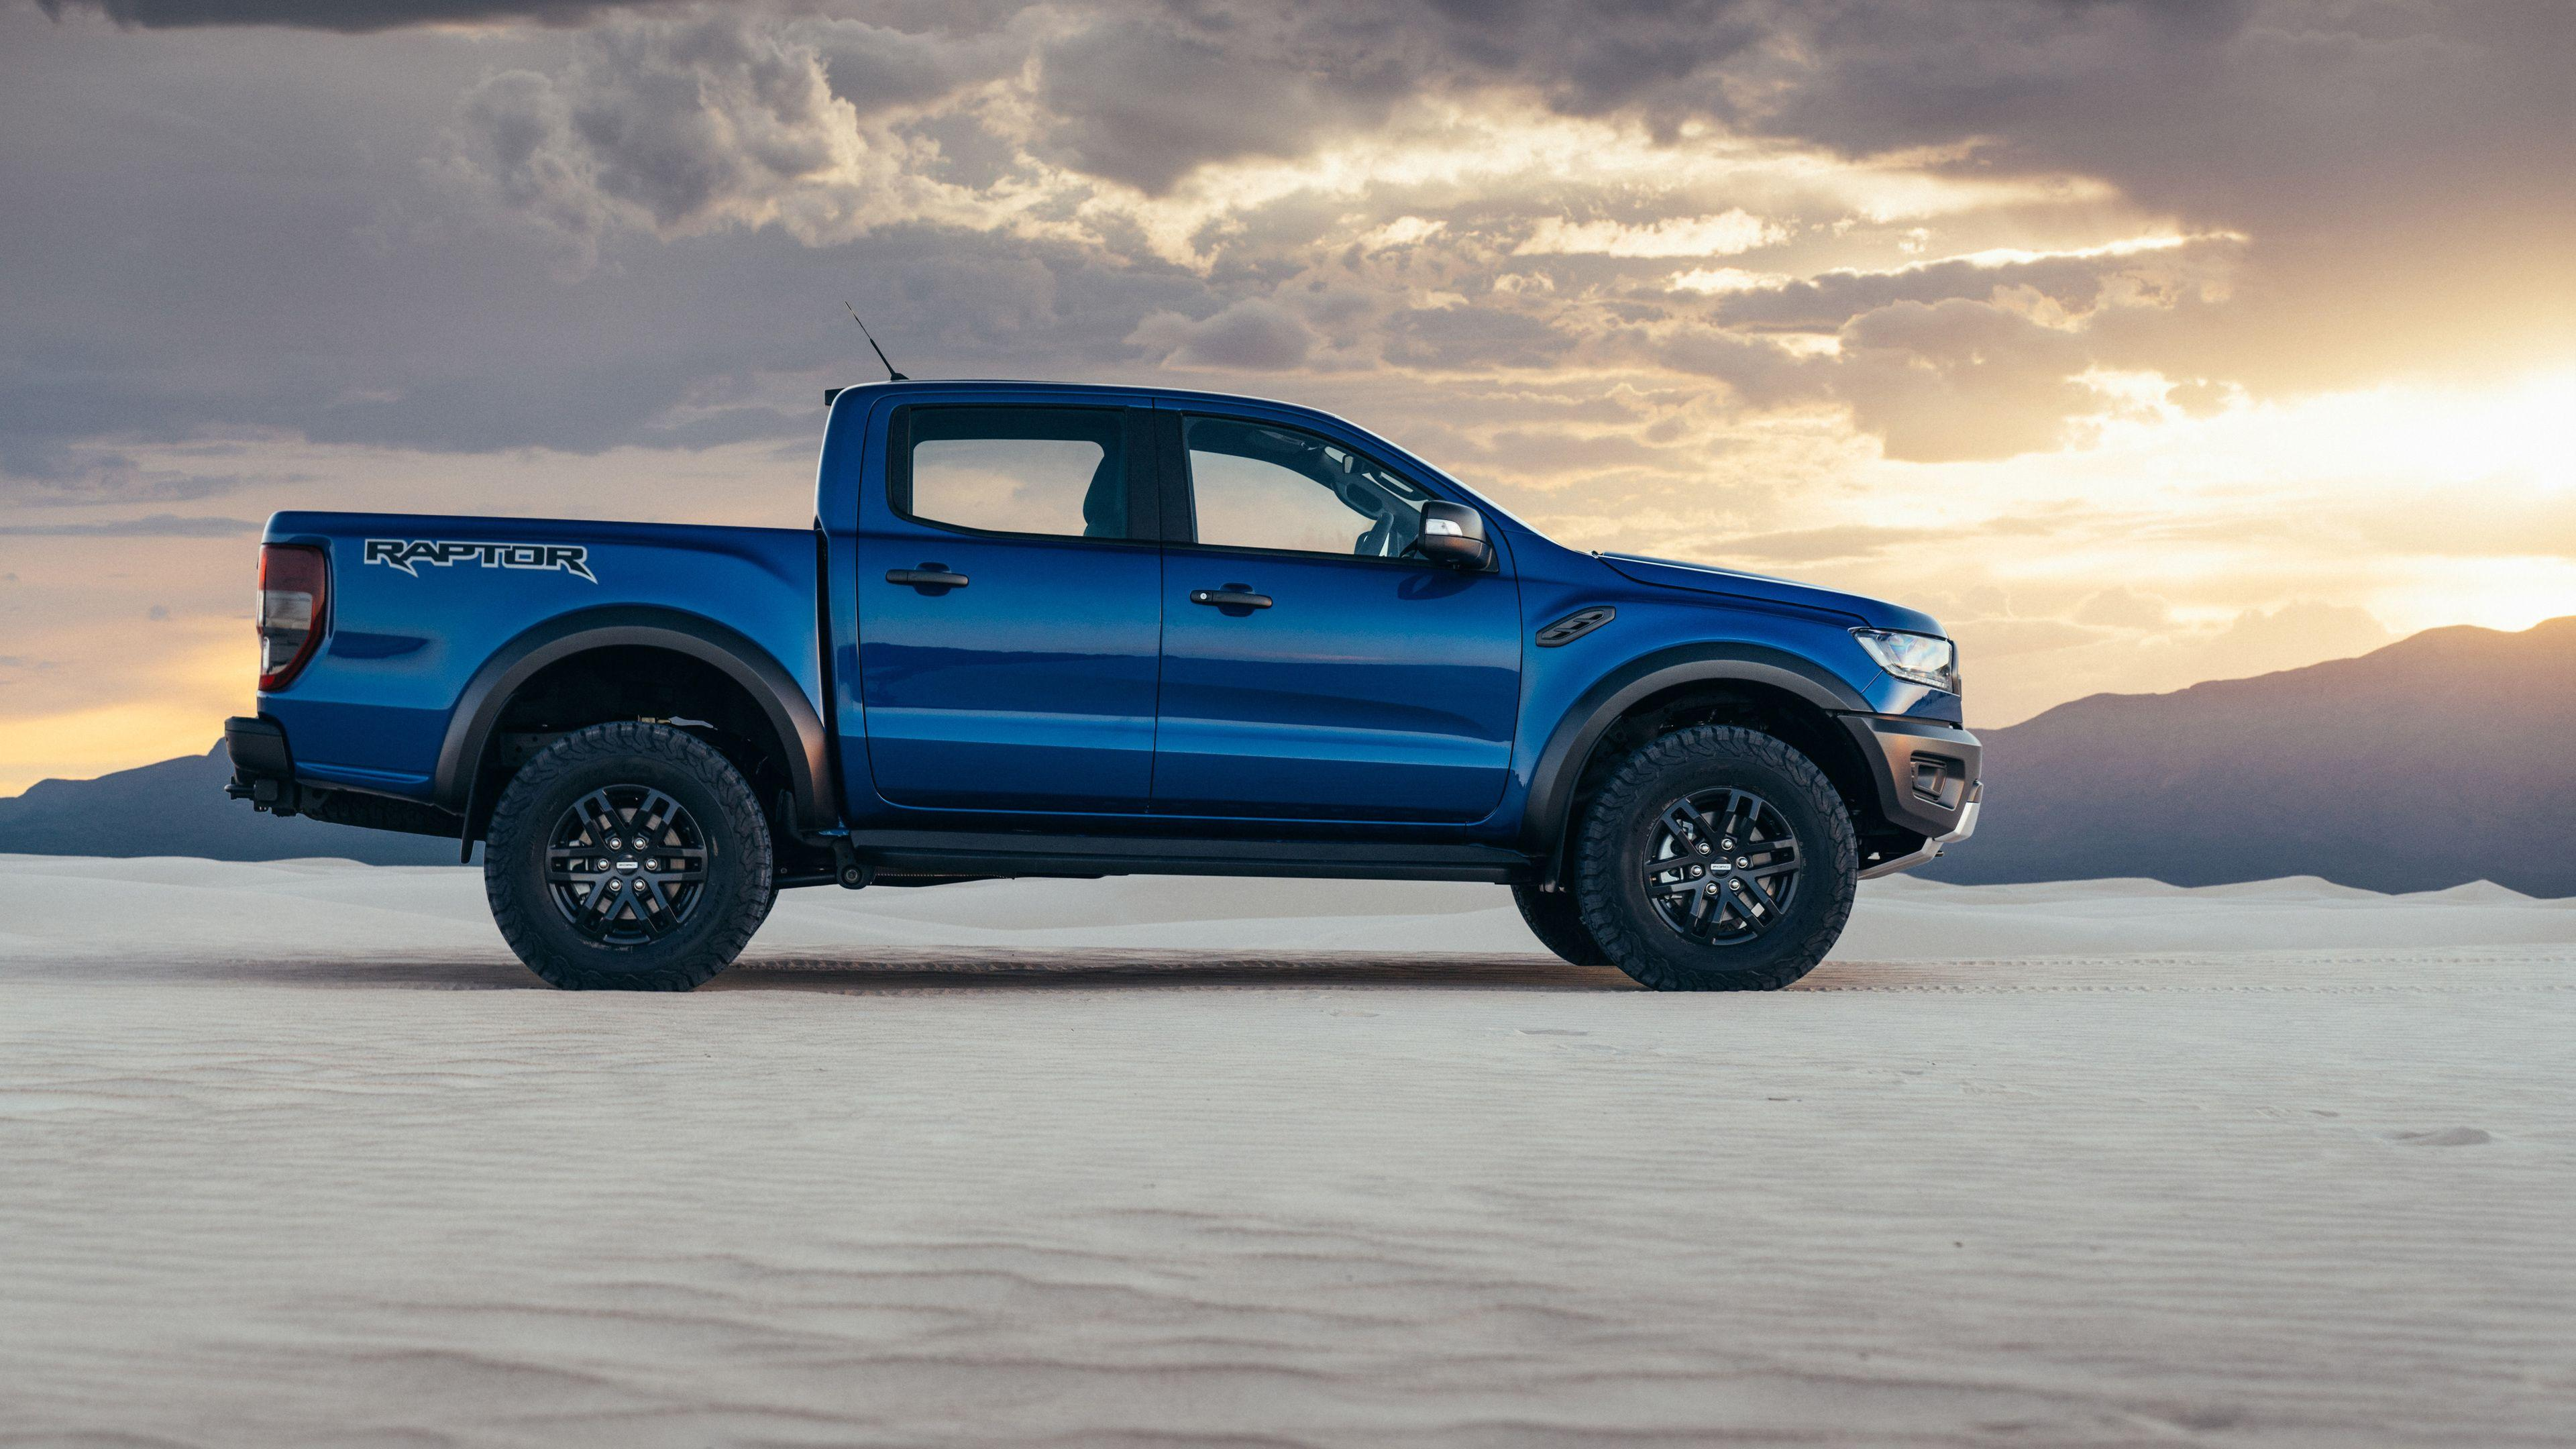 Ford Ranger Raptor Side View 2019 truck wallpapers, hd